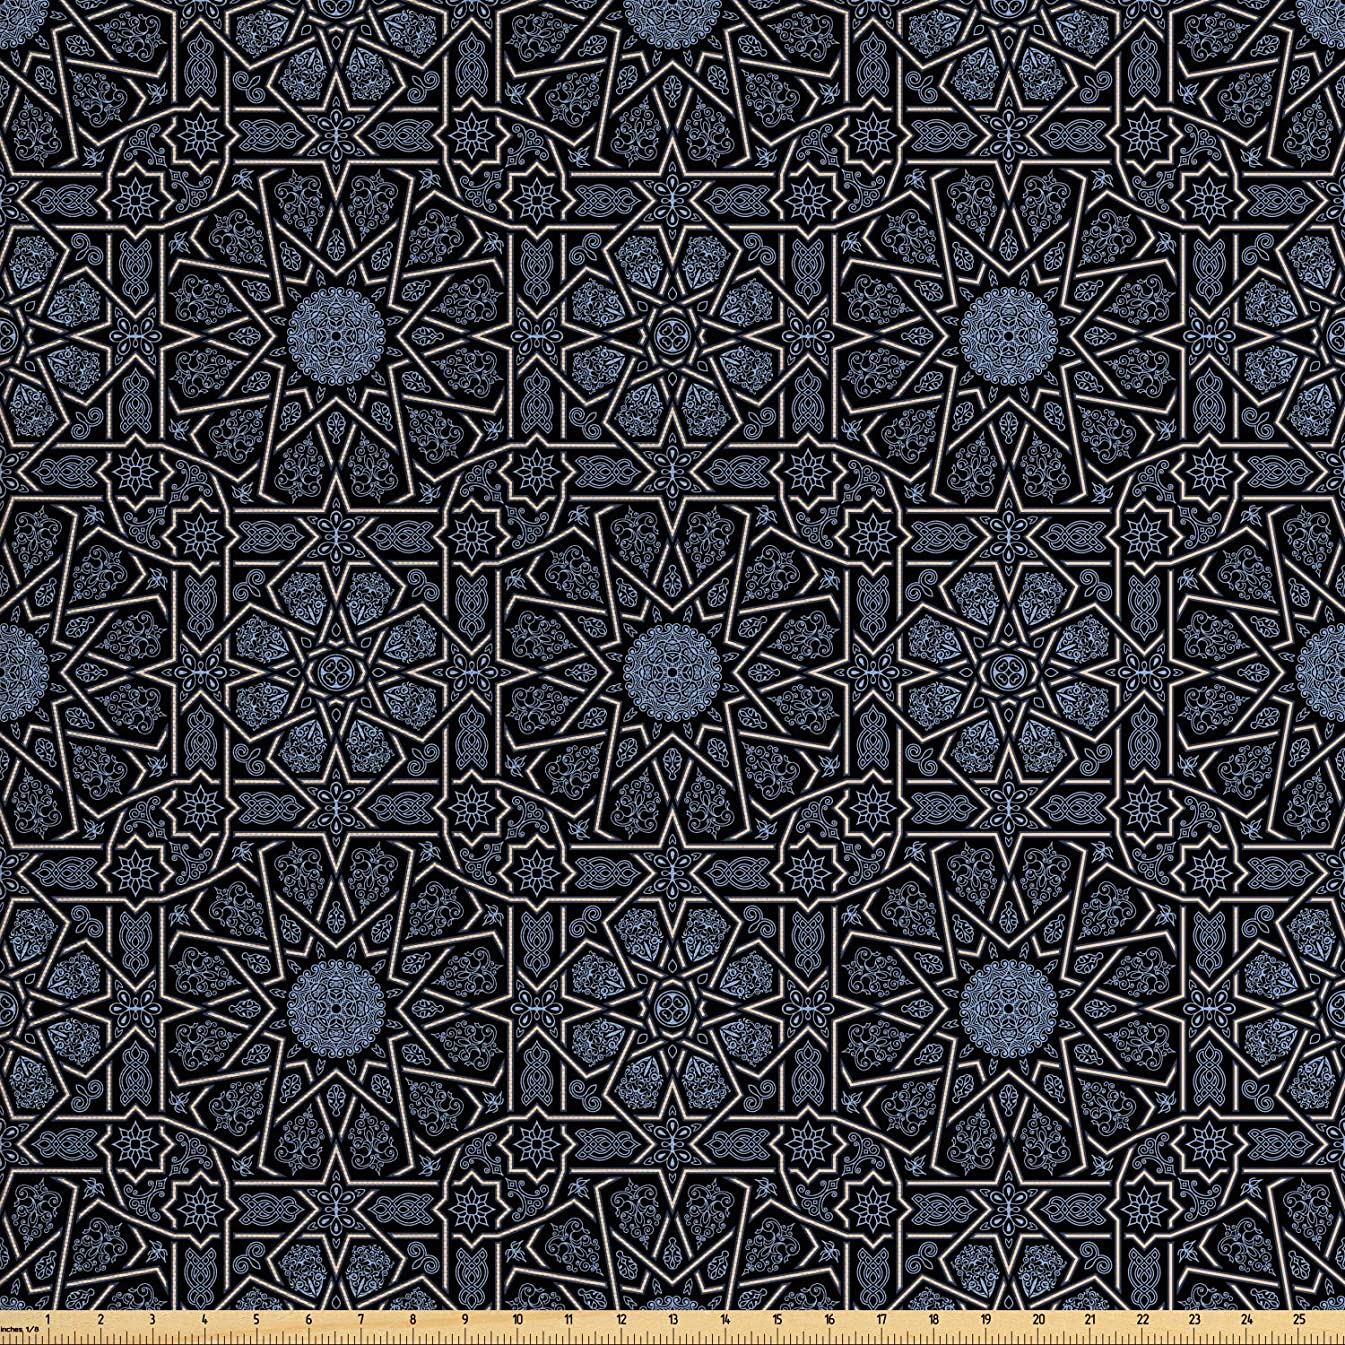 Ambesonne Moroccan Fabric by The Yard, Geometric Design with Old Rich Royal Elements and Moroccan Star Dark Ancient, Decorative Fabric for Upholstery and Home Accents, 2 Yards, Black Cream Blue